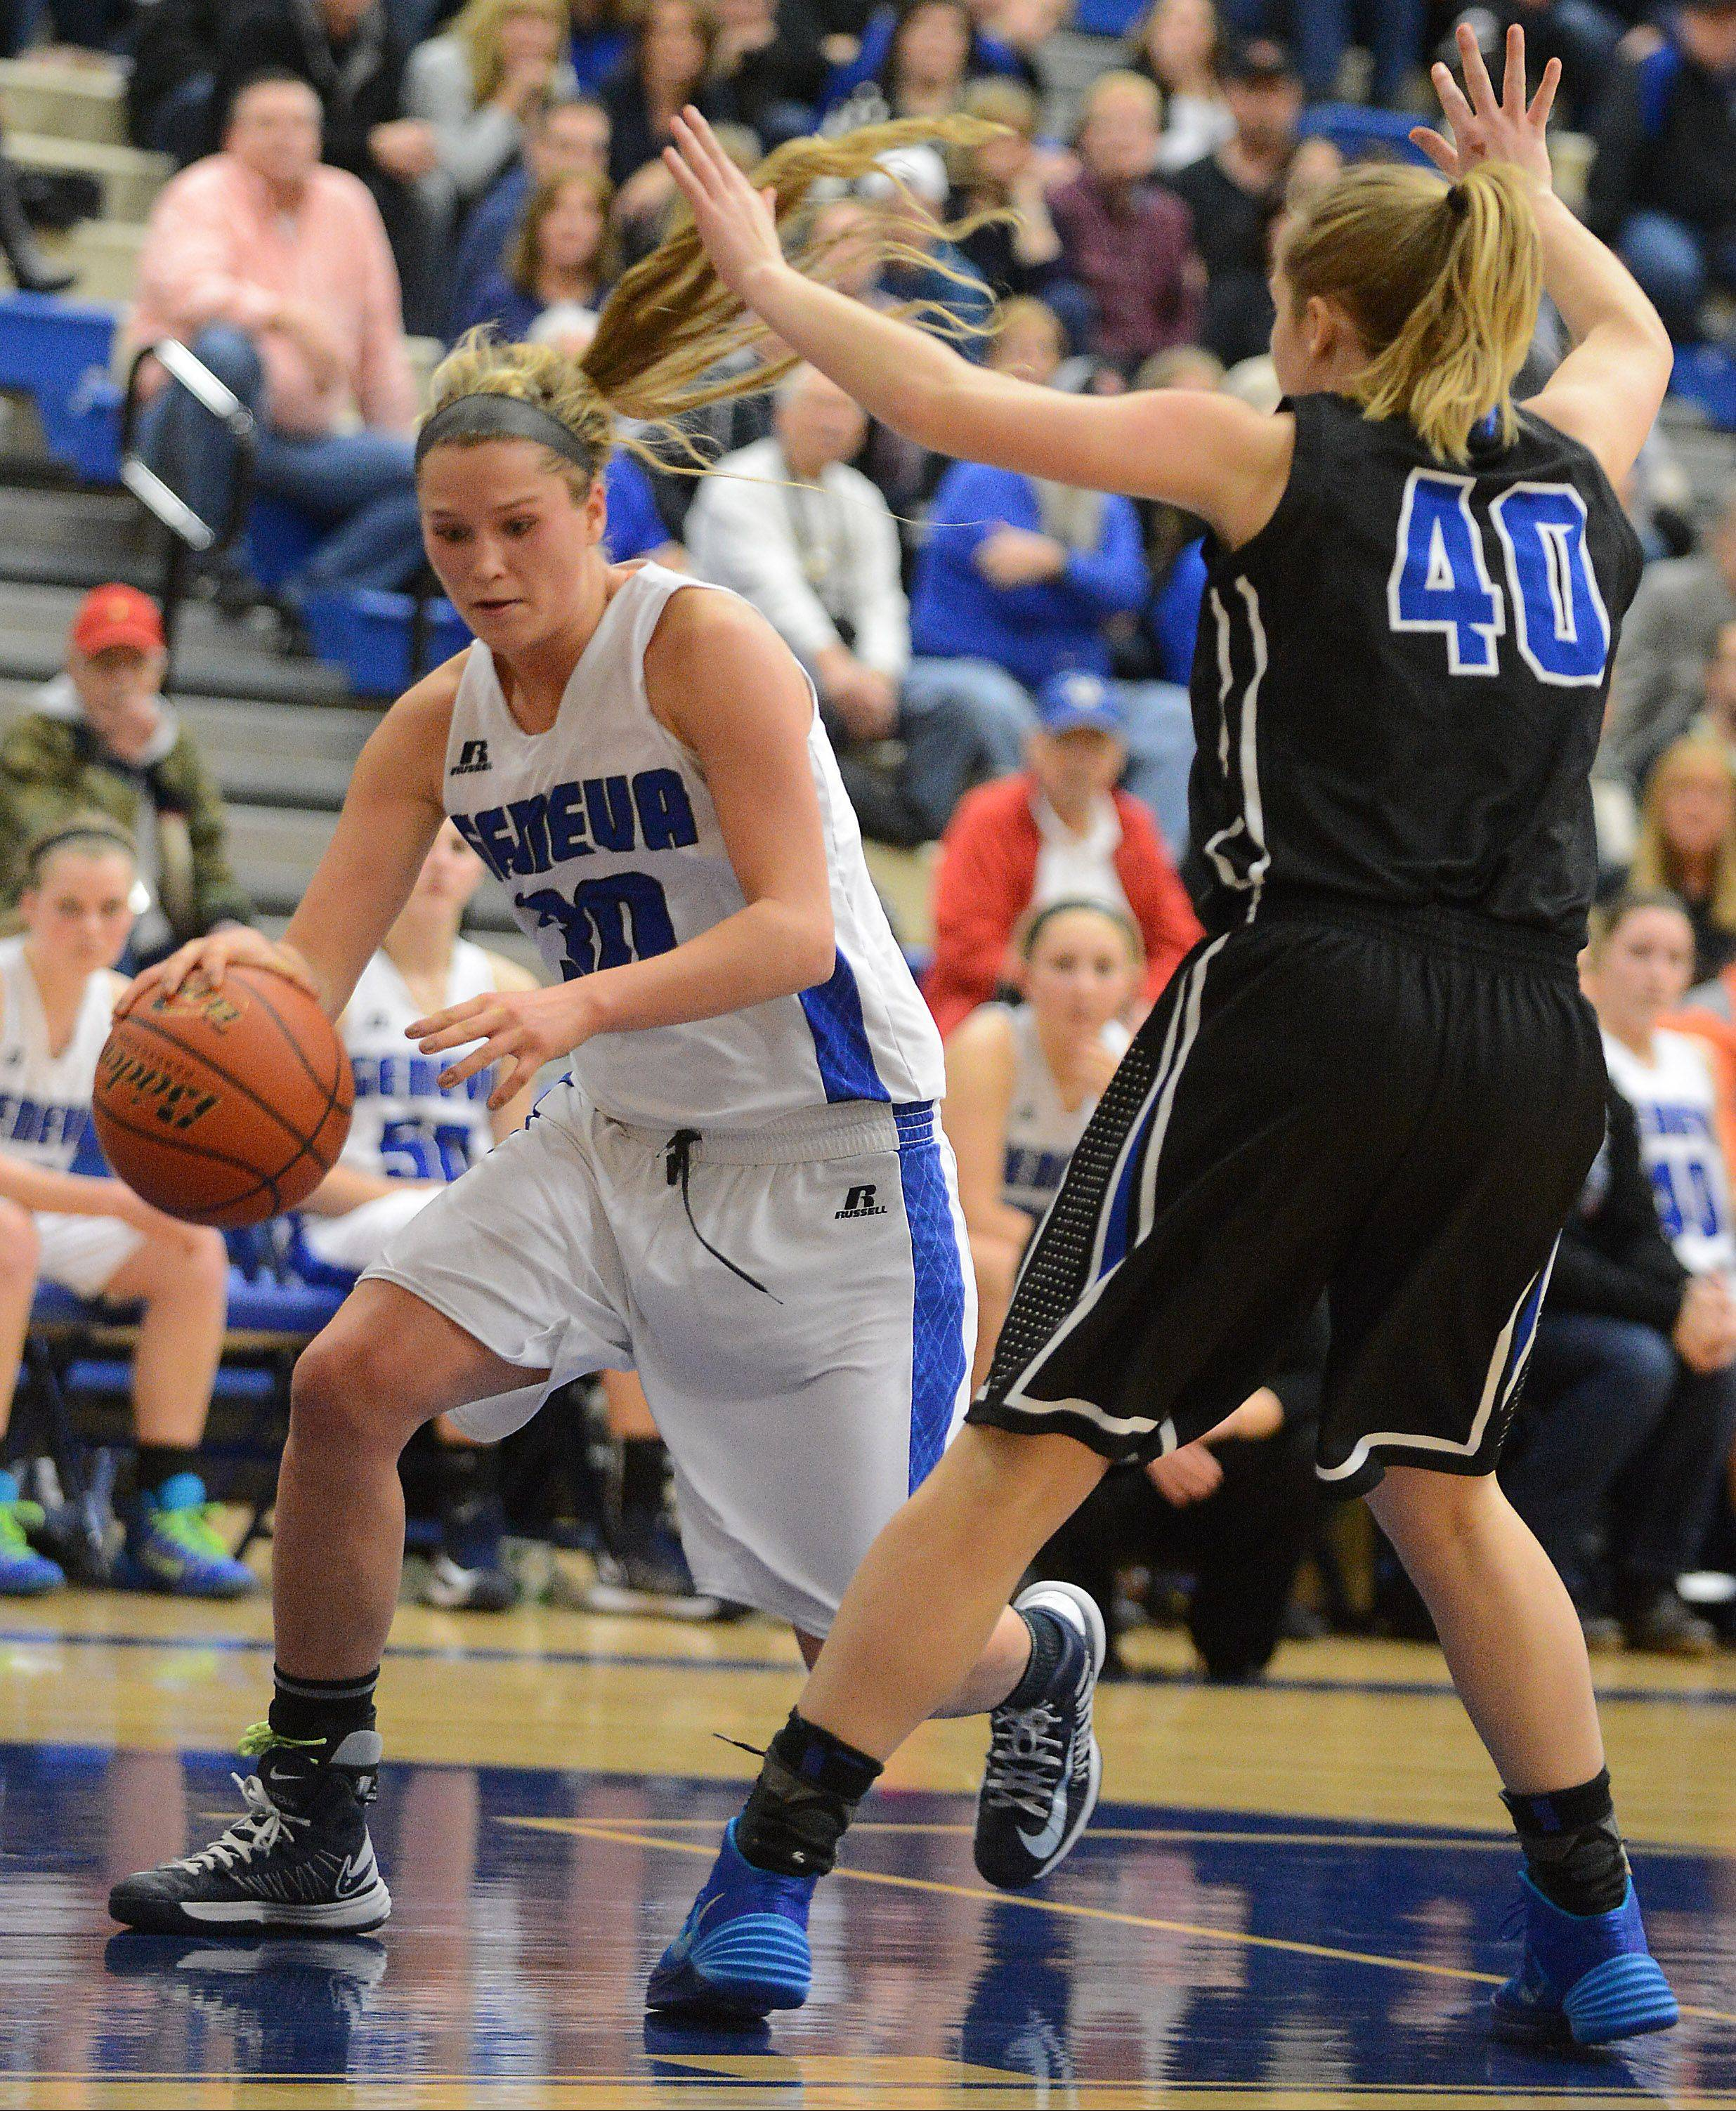 Geneva's Janie McCloughan drives to the basket against St. Charles North's Abby Mackay-Zacker during Friday's game.